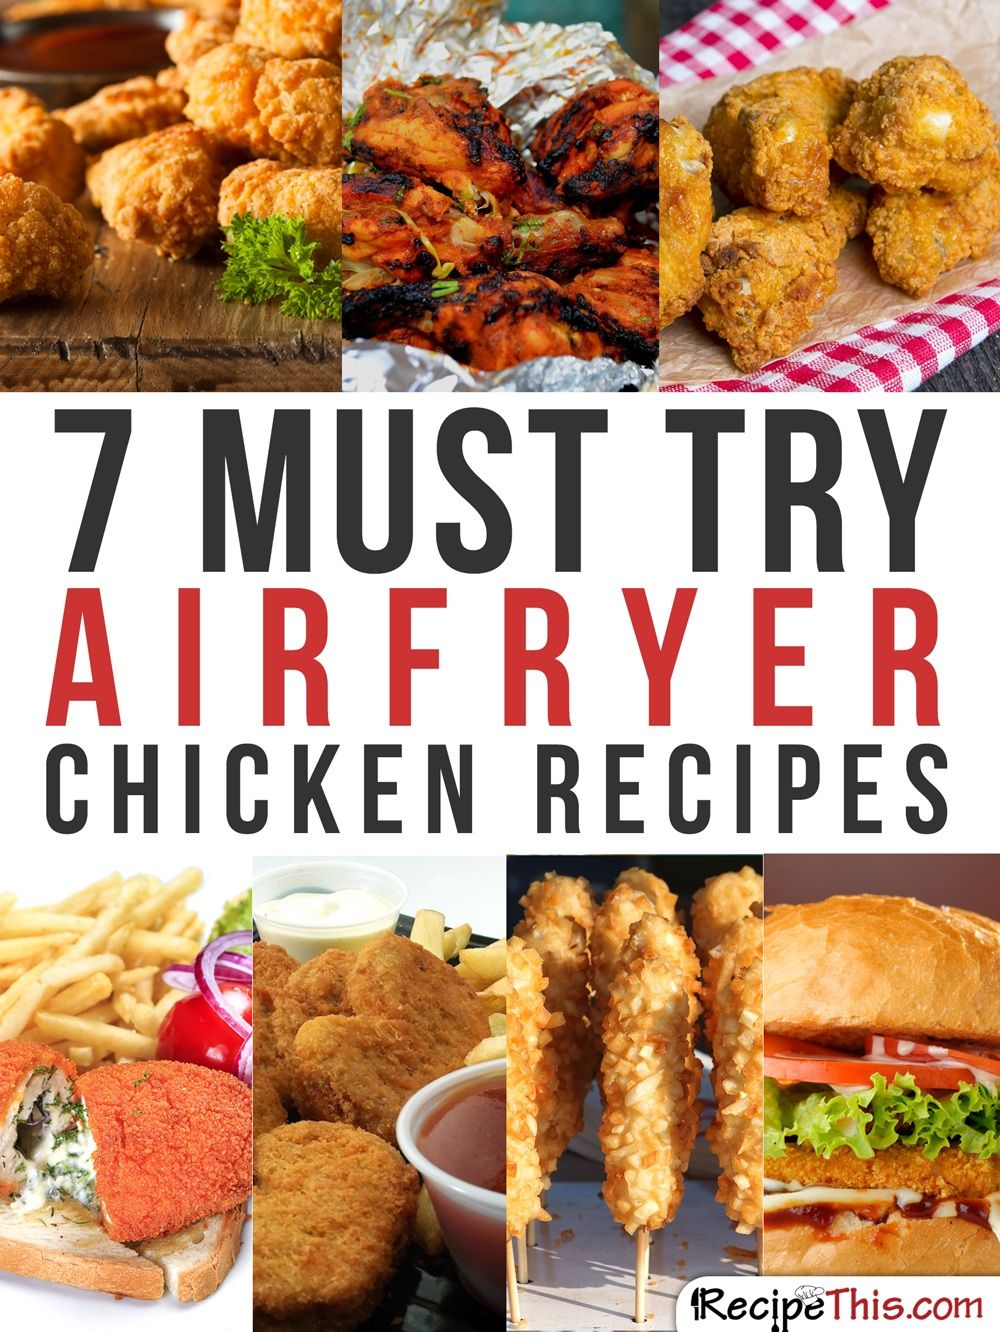 Airfryer Recipes My 7 Favourite Air Fryer Chicken Recipes That I Just Can T Stop Cookin Air Fryer Recipes Healthy Air Fryer Recipes Chicken Air Frier Recipes